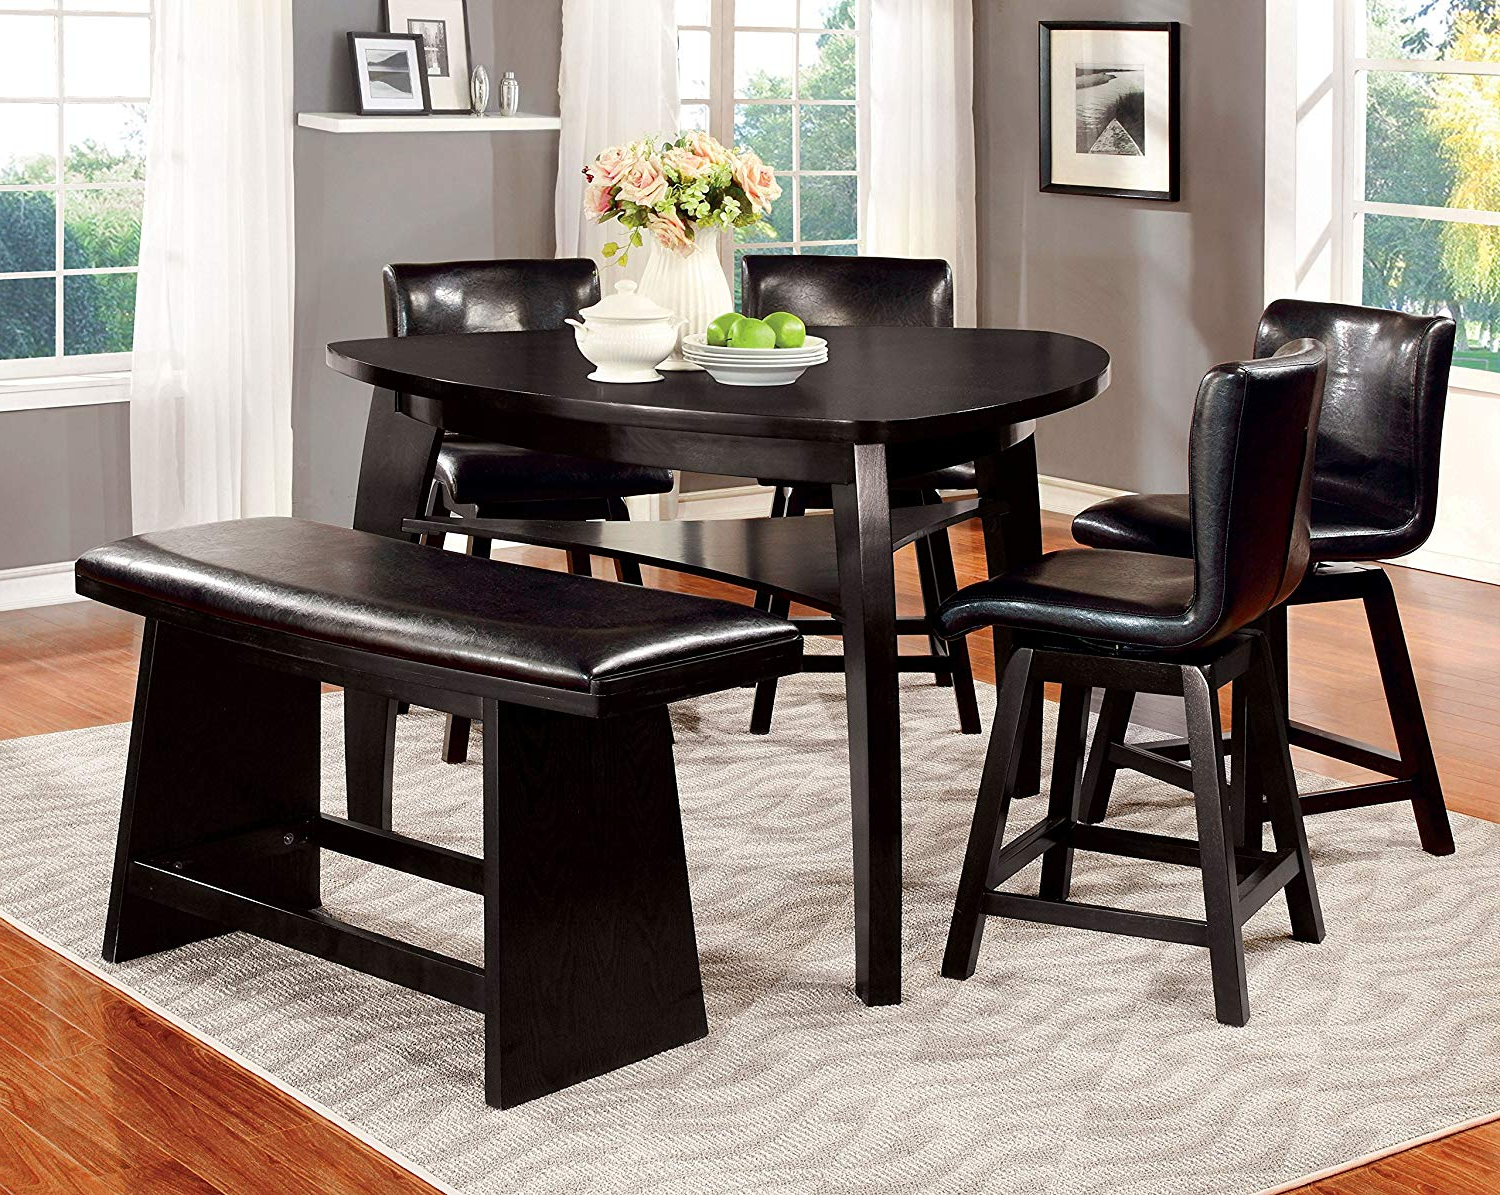 Amazon – Furniture Of America Morley Pub Dining Table, Black Inside Most Recently Released Amir 5 Piece Solid Wood Dining Sets (Set Of 5) (View 4 of 25)